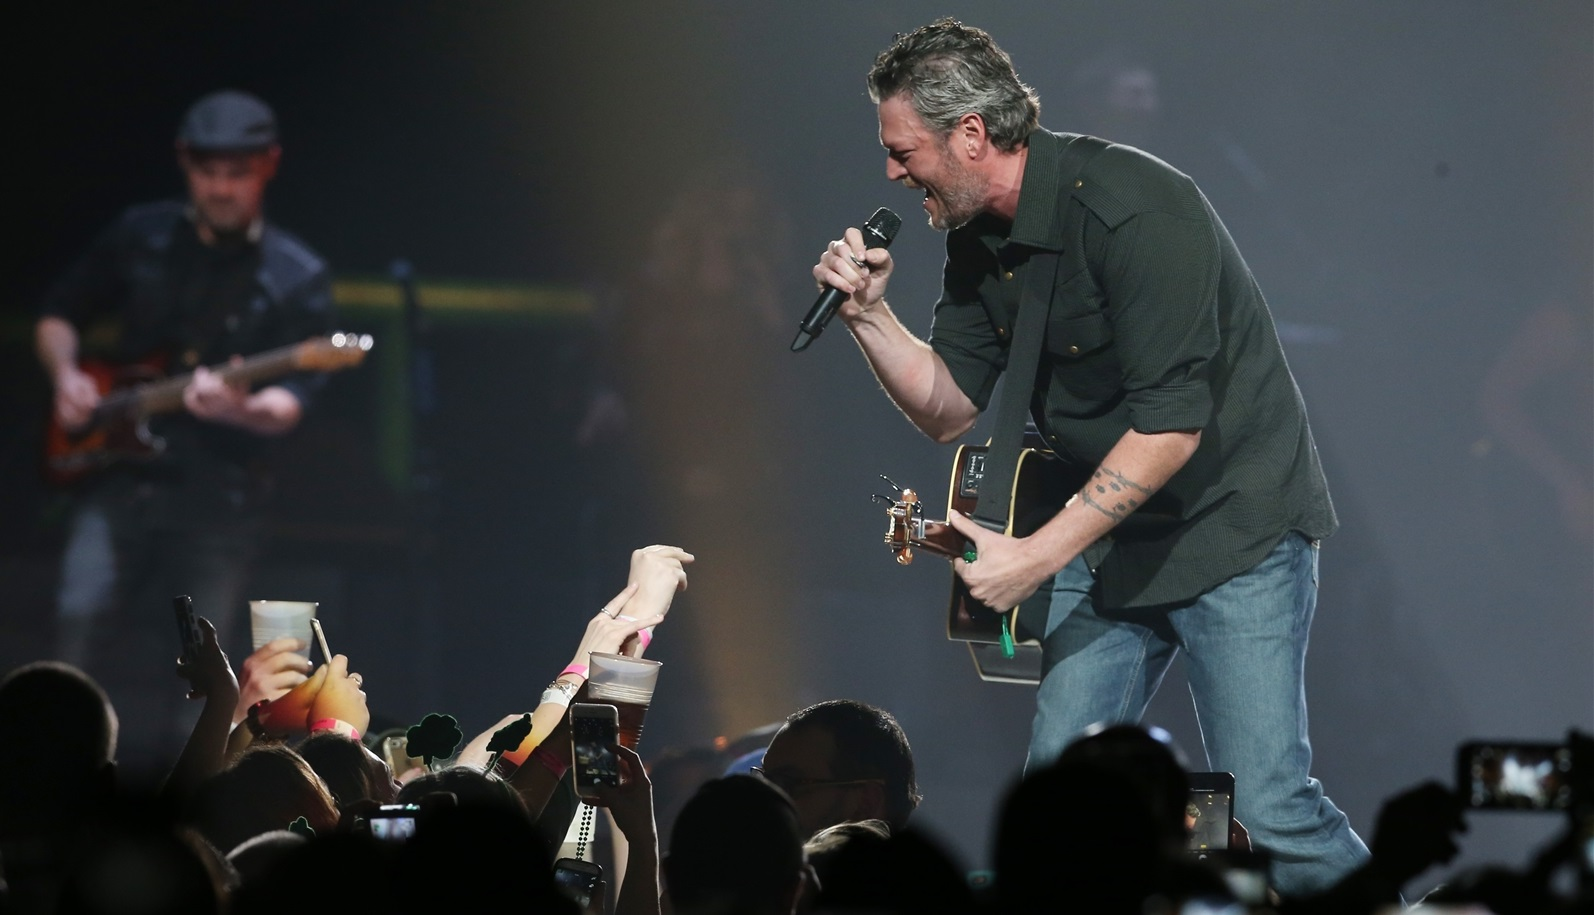 Country superstar Blake Shelton performs Thursday night at First Niagara Center. See photo gallery of the concert at galleries.buffalonews.com.